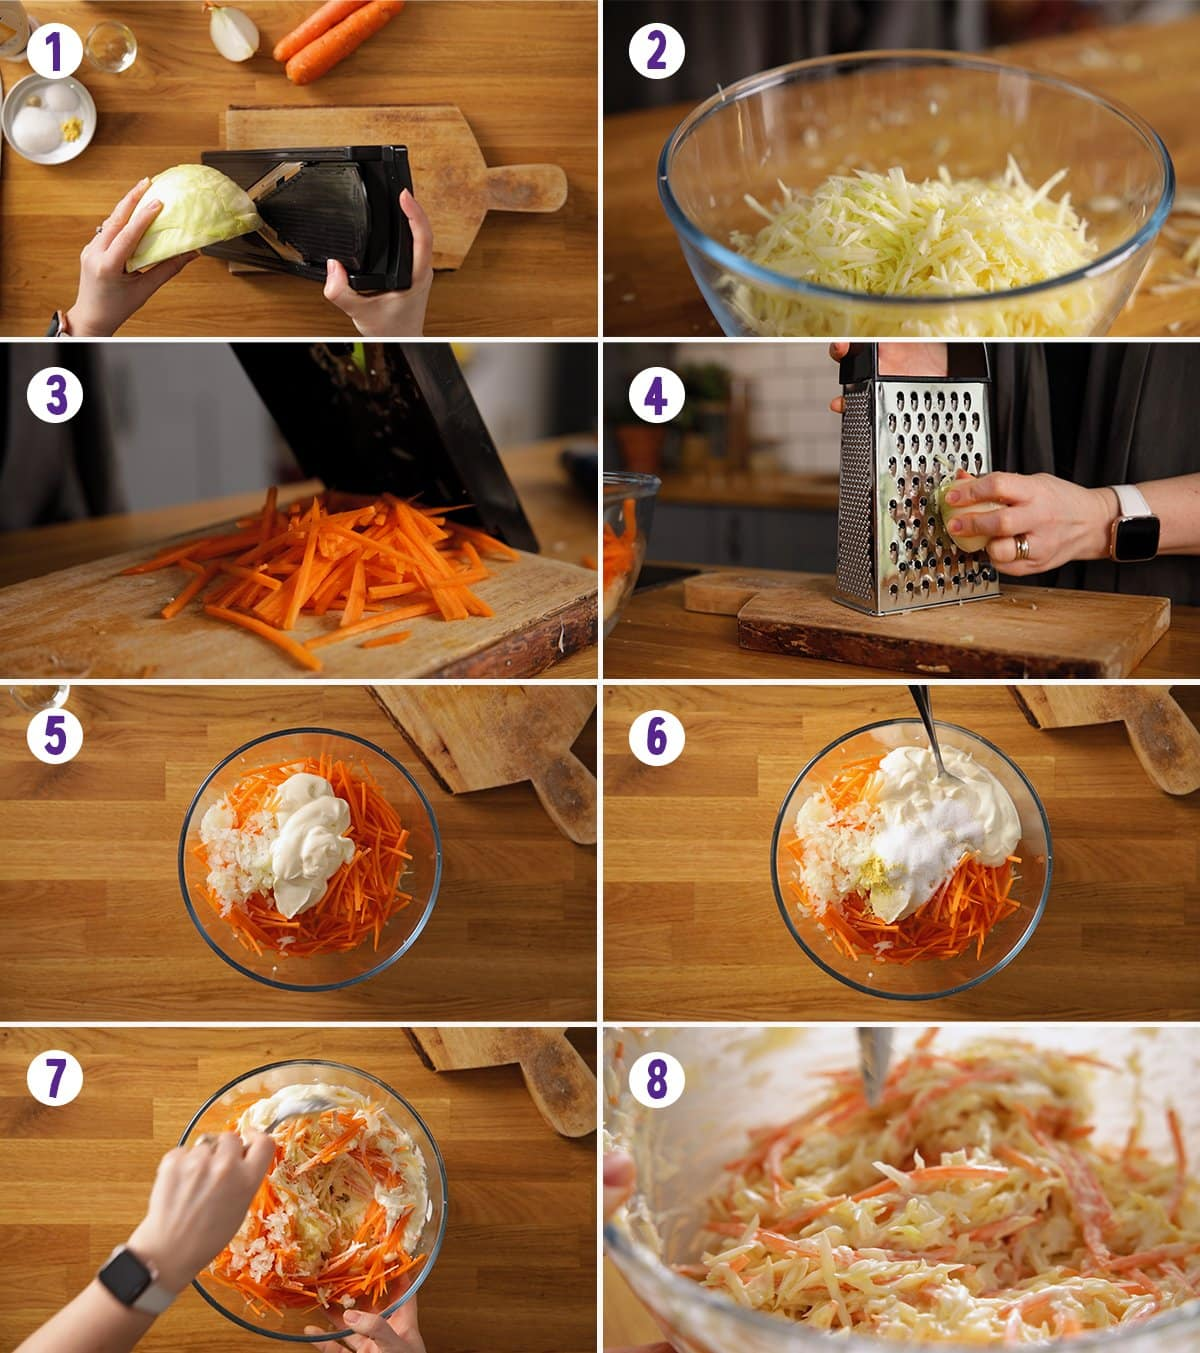 8 image collage showing how to make creamy coleslaw